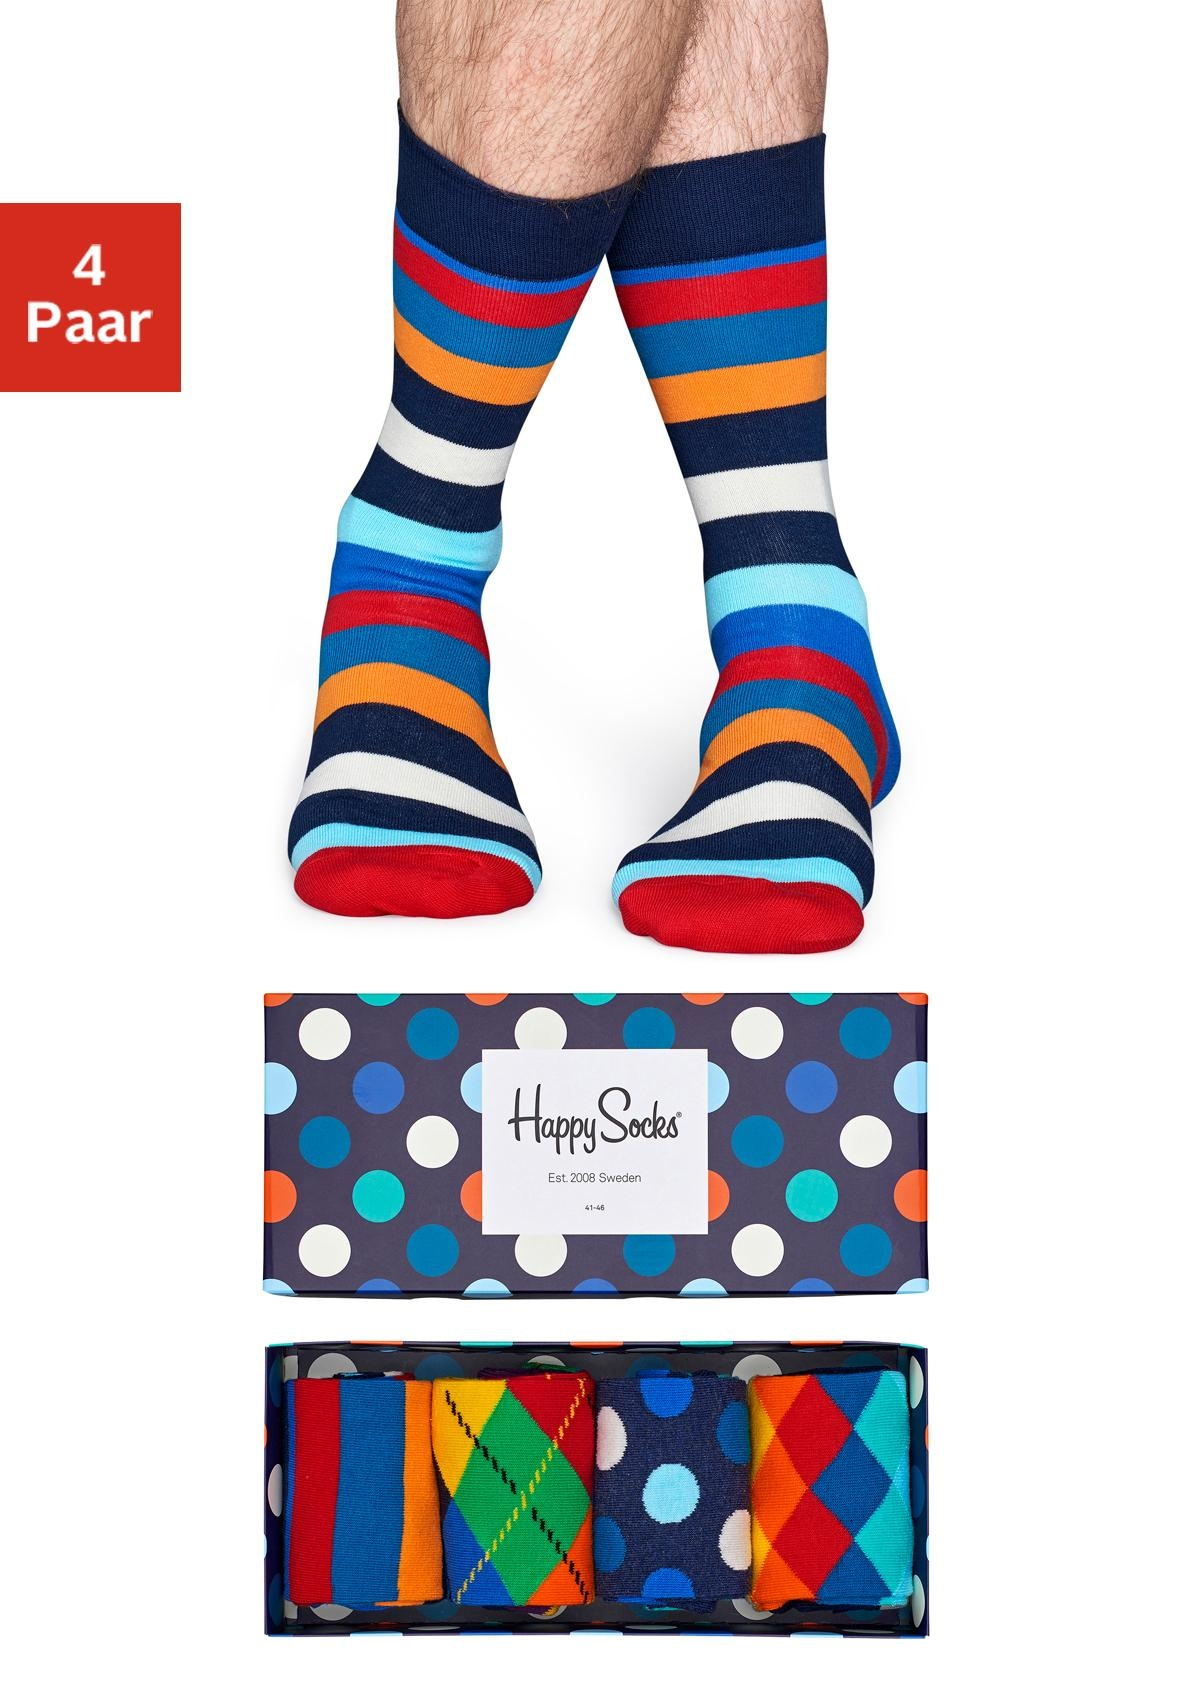 Image of Happy Socks Socken (Box, 4 Paar)